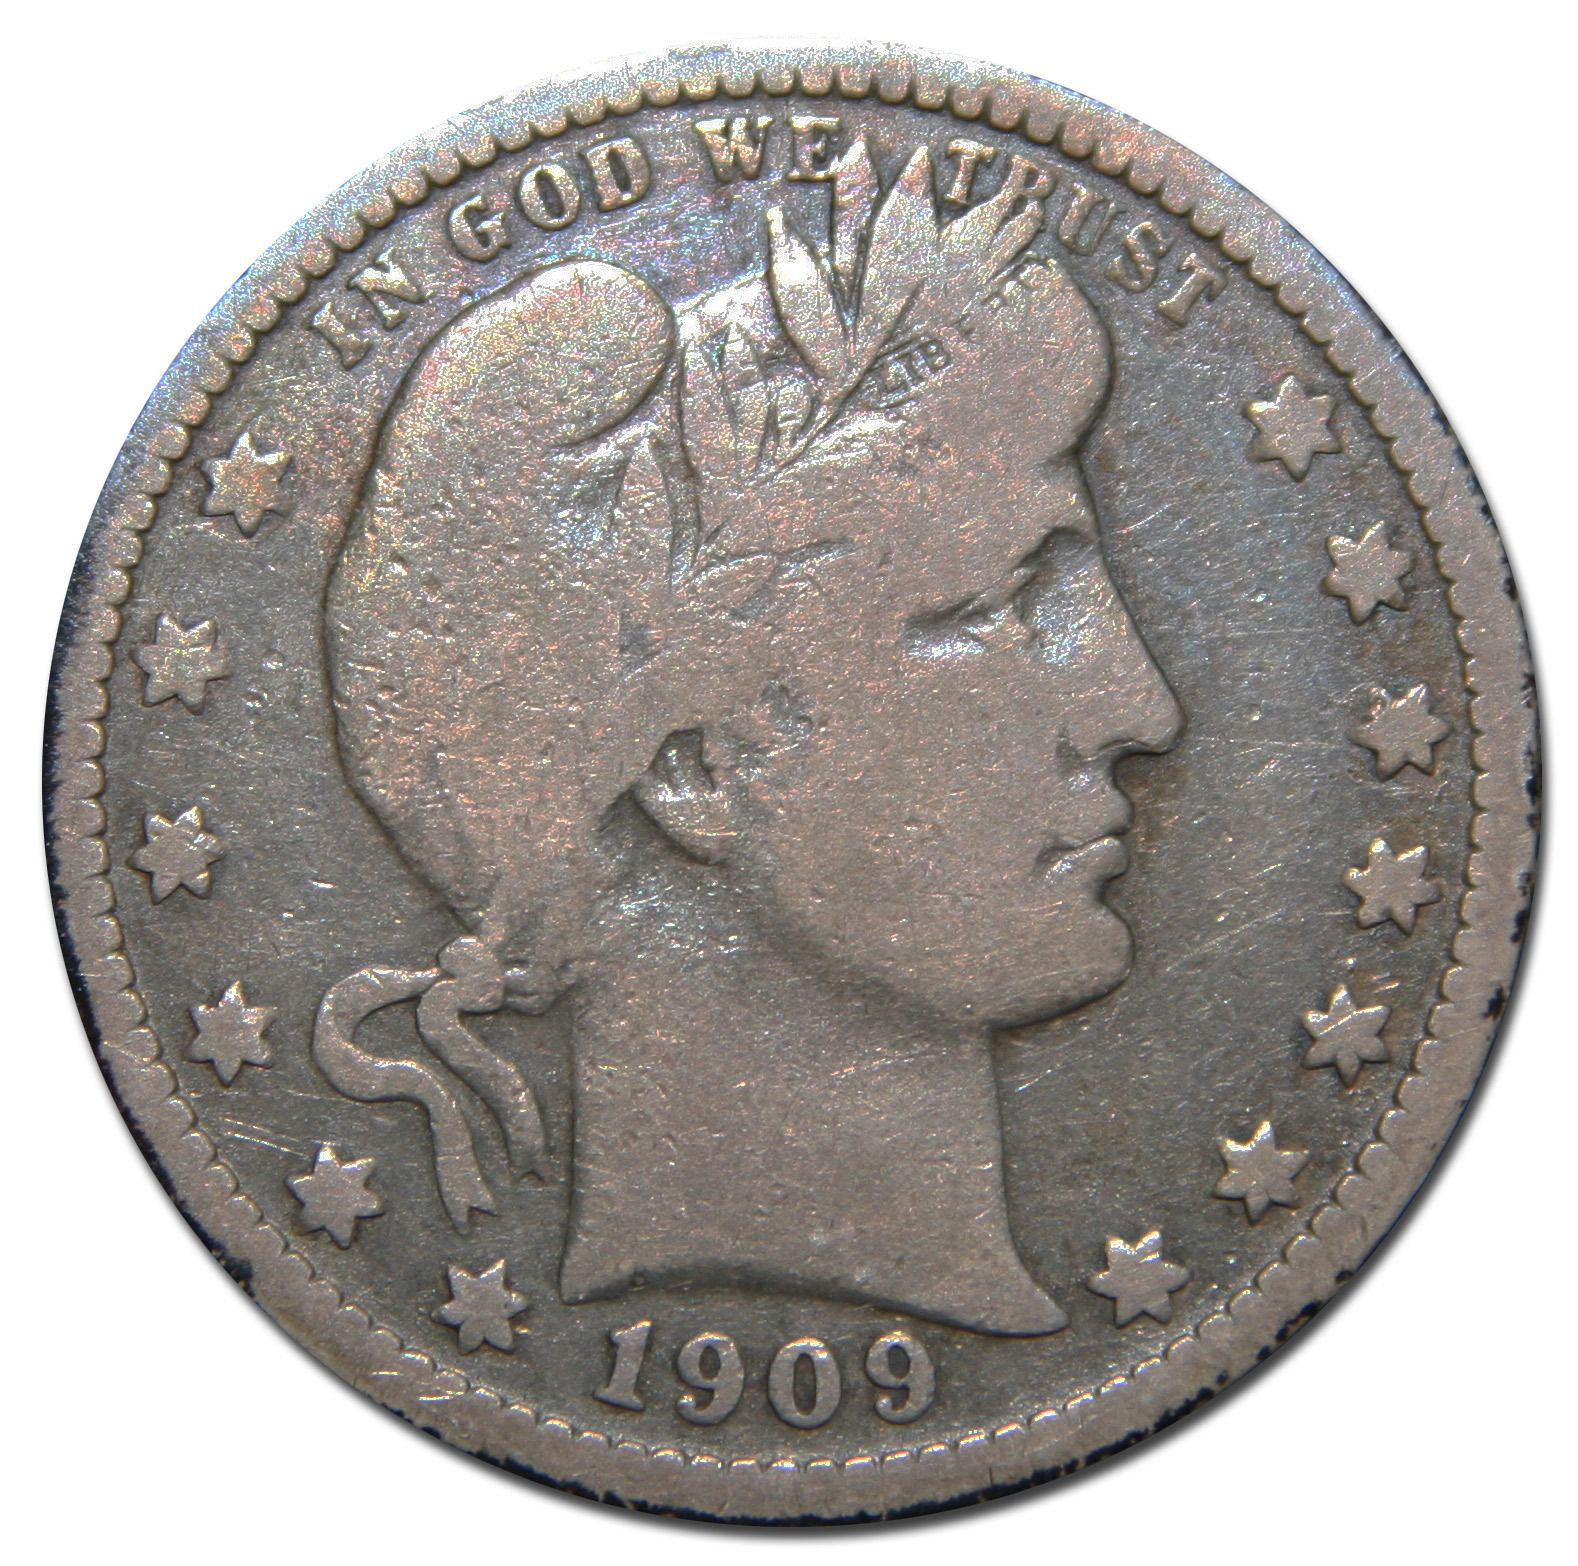 1909O Barber Quarter 25¢ Silver Liberty Head Coin Lot# MZ 3170